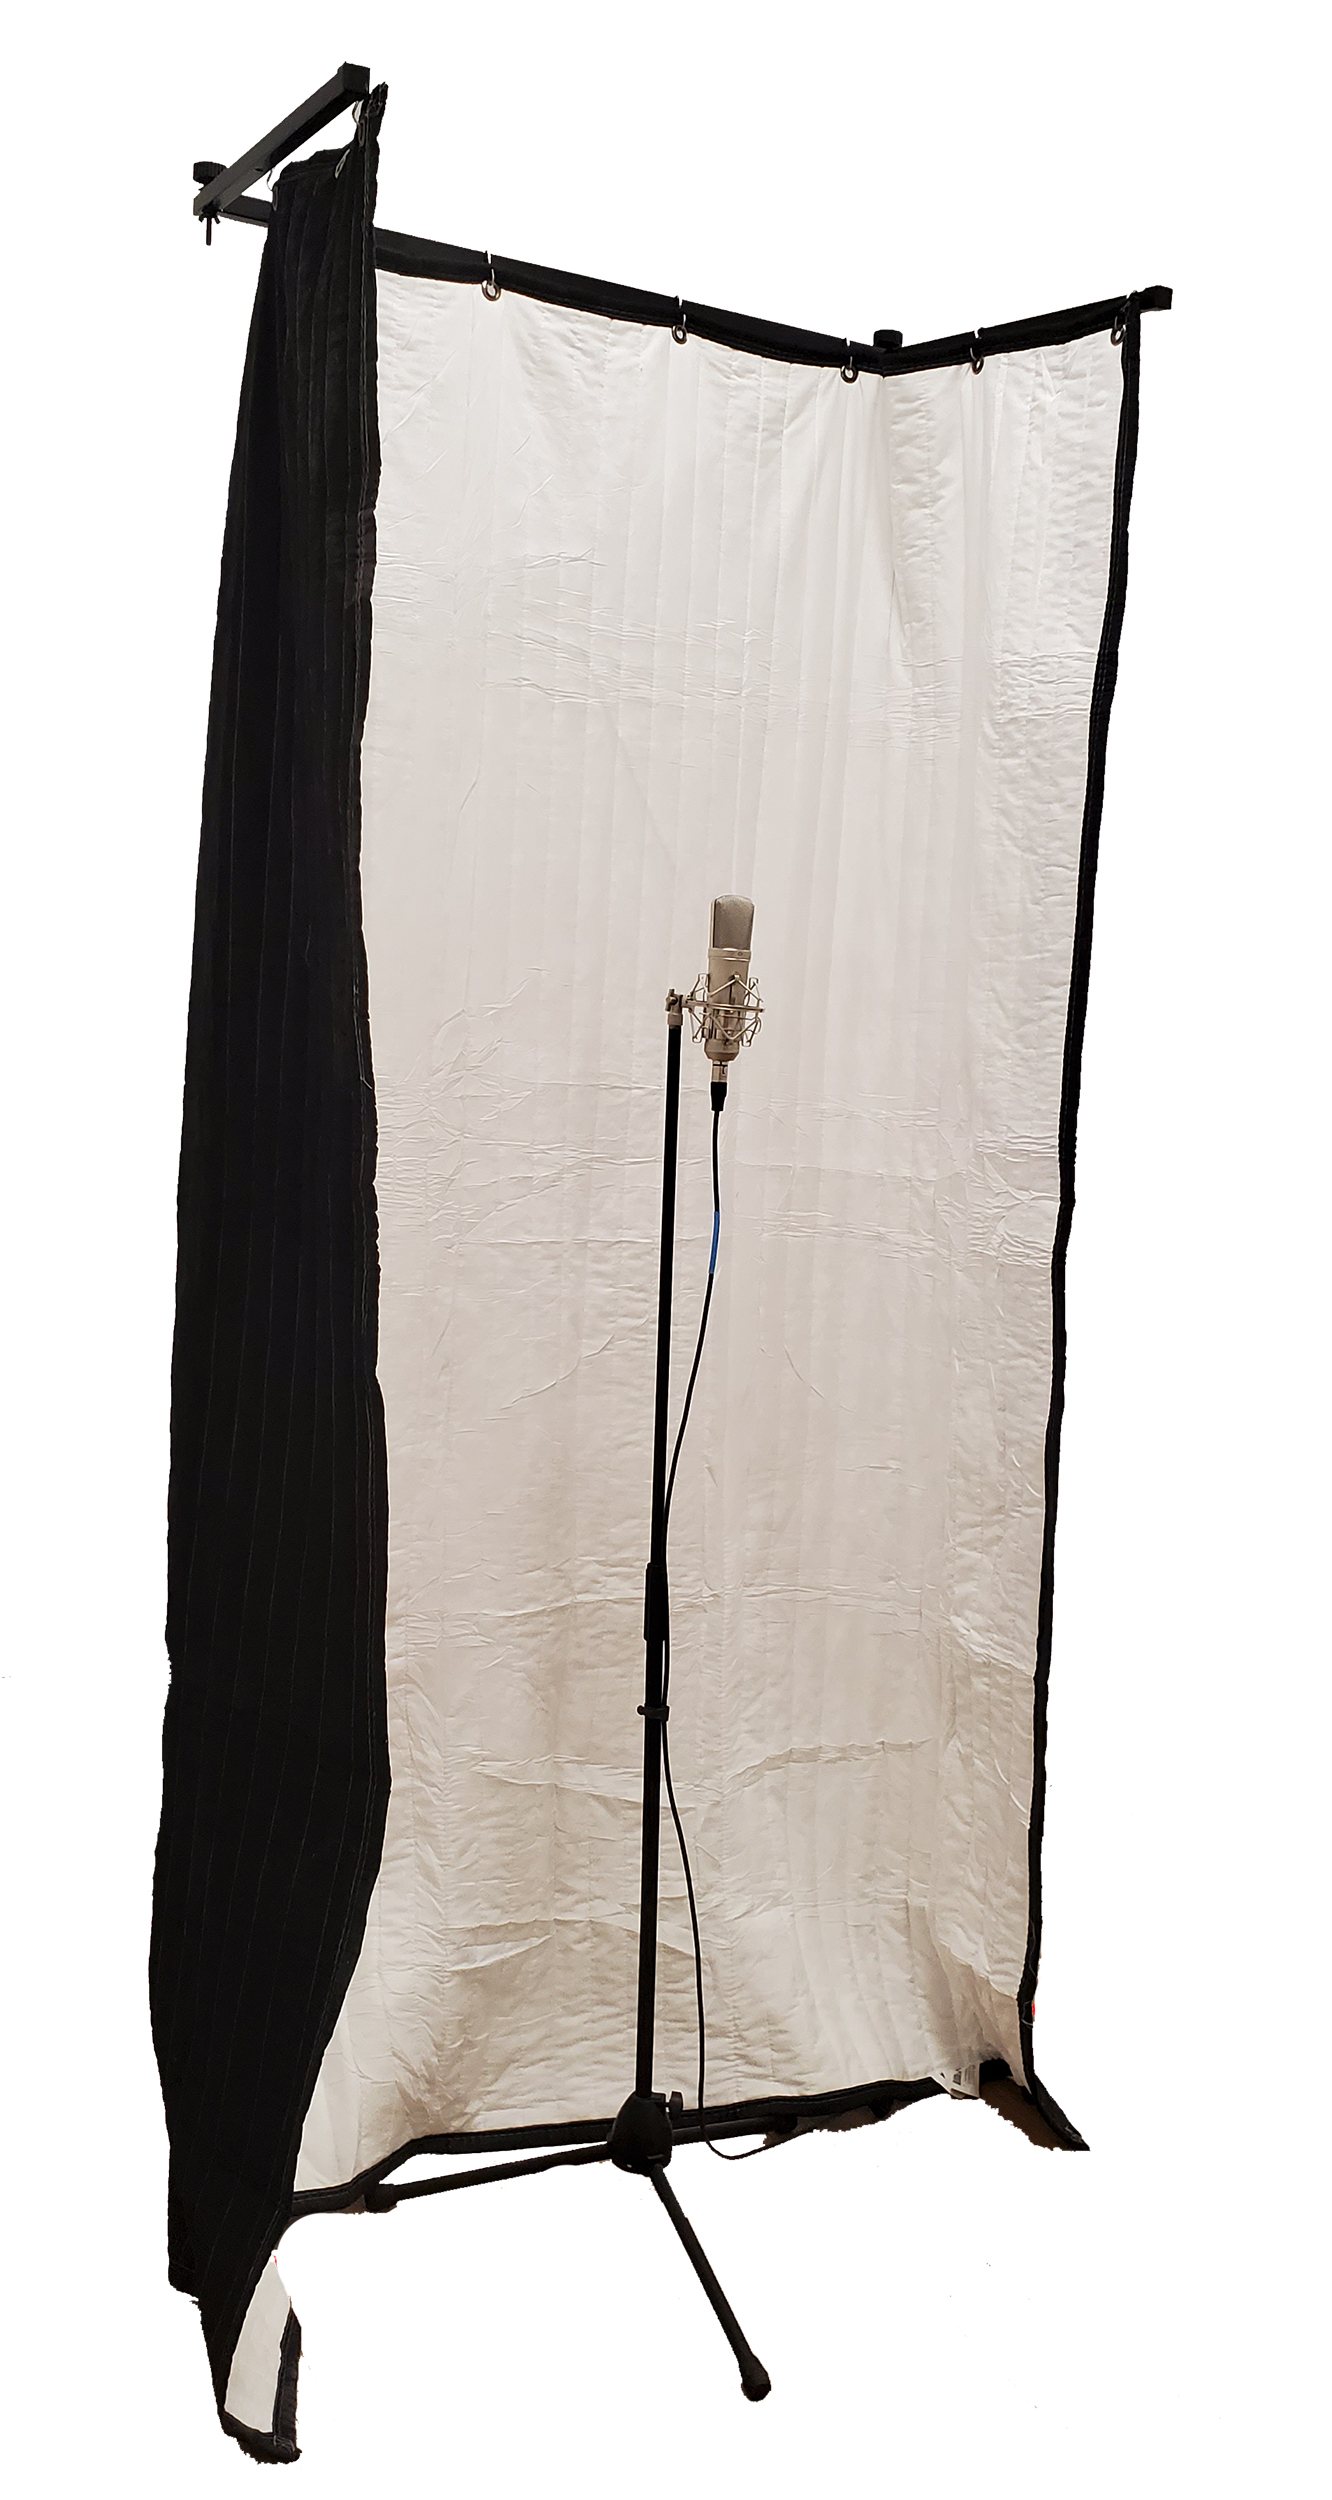 FlexTee Stand for acoustic room treatment with Microphone side